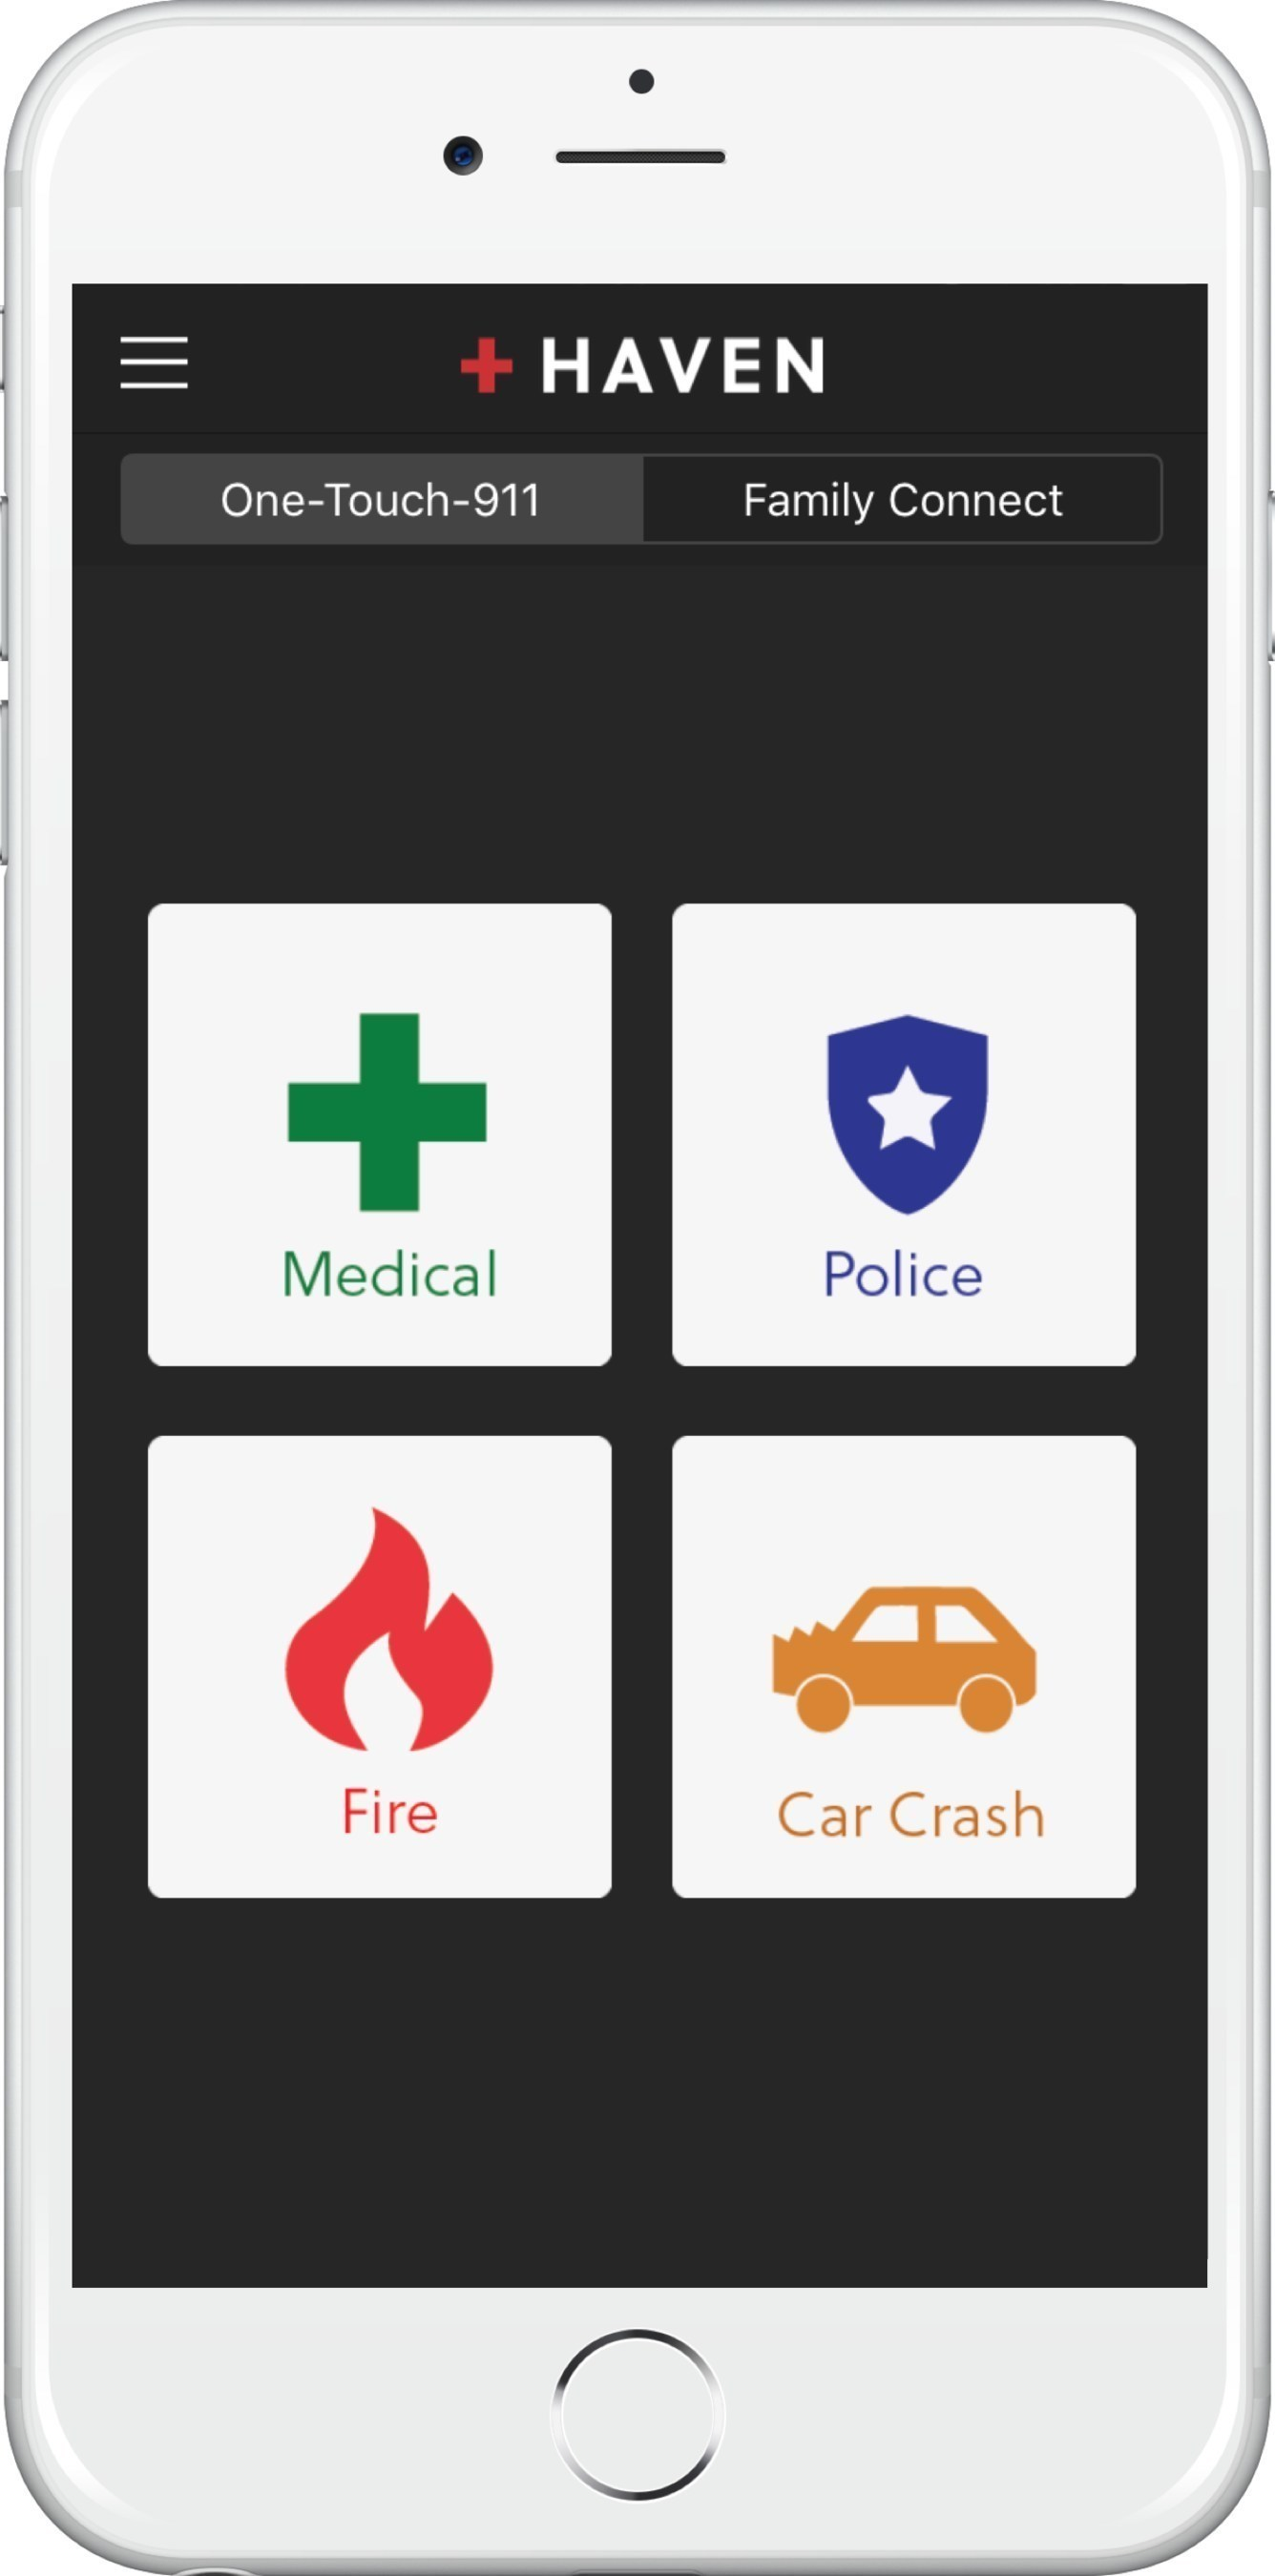 RapidSOS launches Haven, ushering in a new age of emergency communication and personal safety.